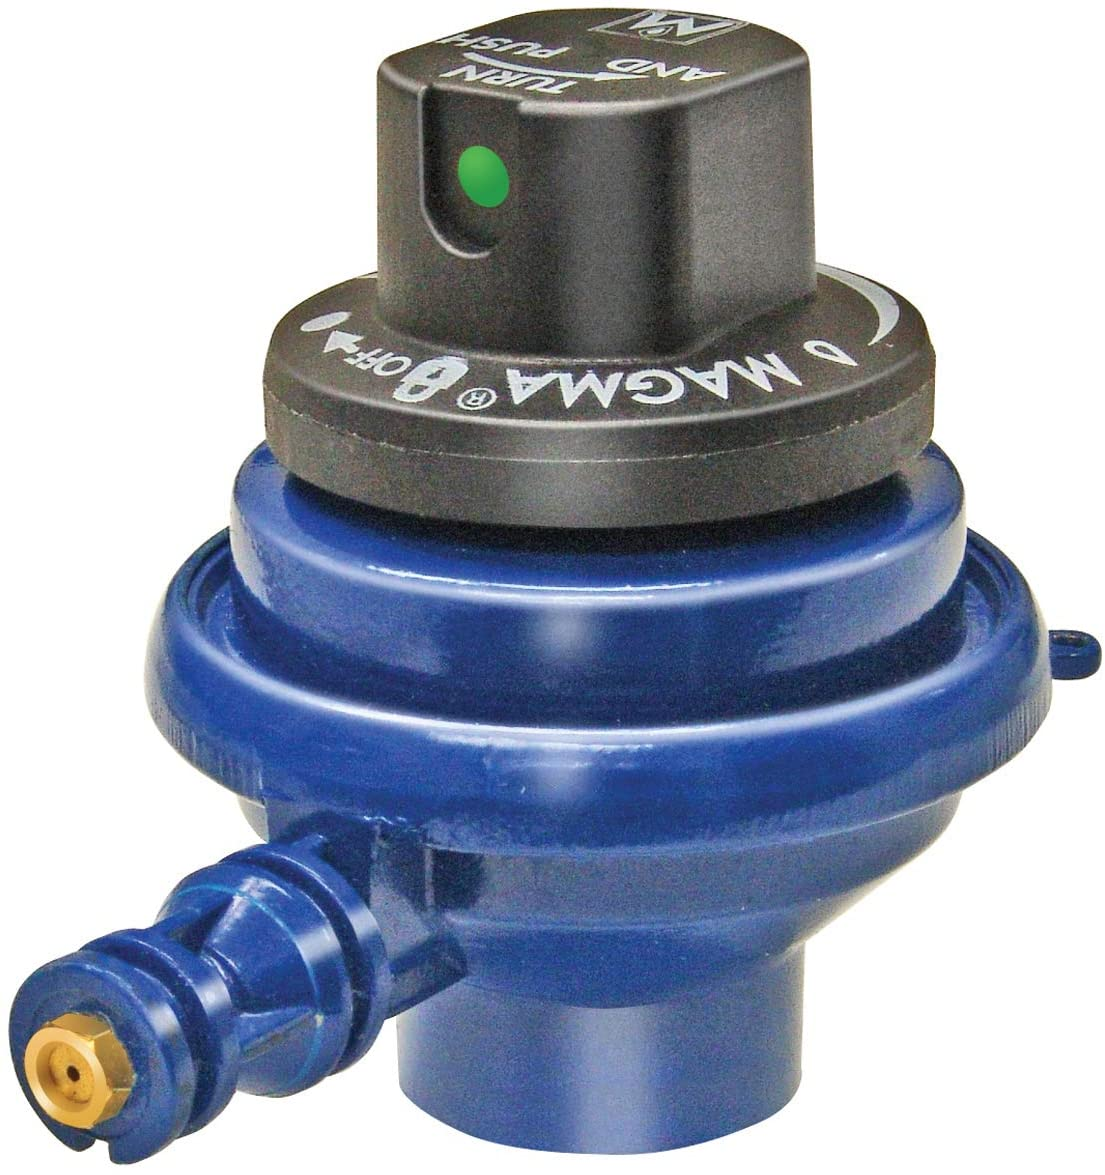 Magma Products Control Valve Regulator Type 1 Replacement Parts